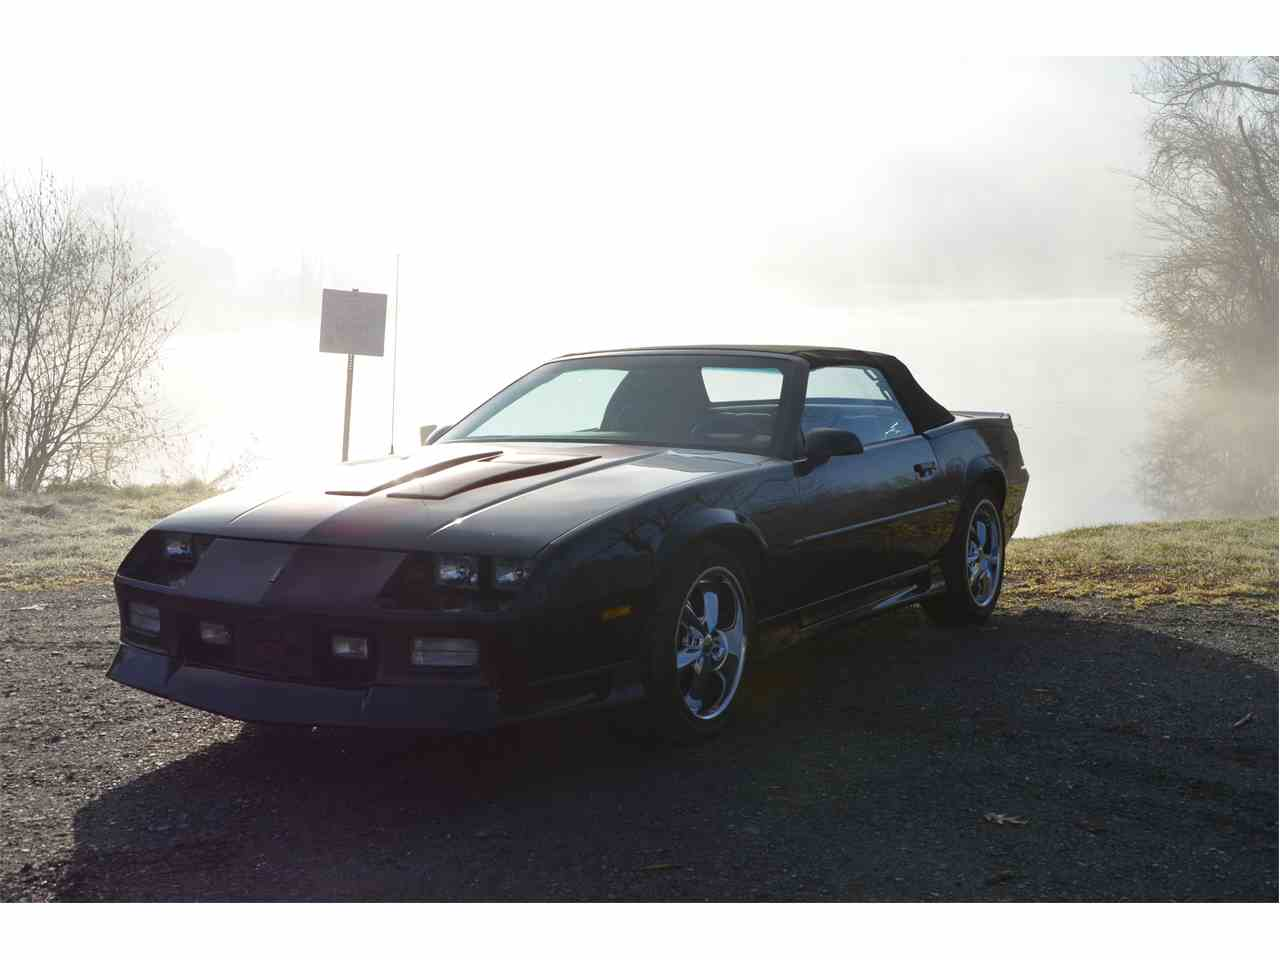 Large Picture of 1992 Chevrolet Camaro Z28 located in North Thetford Vermont Offered by a Private Seller - LBBW